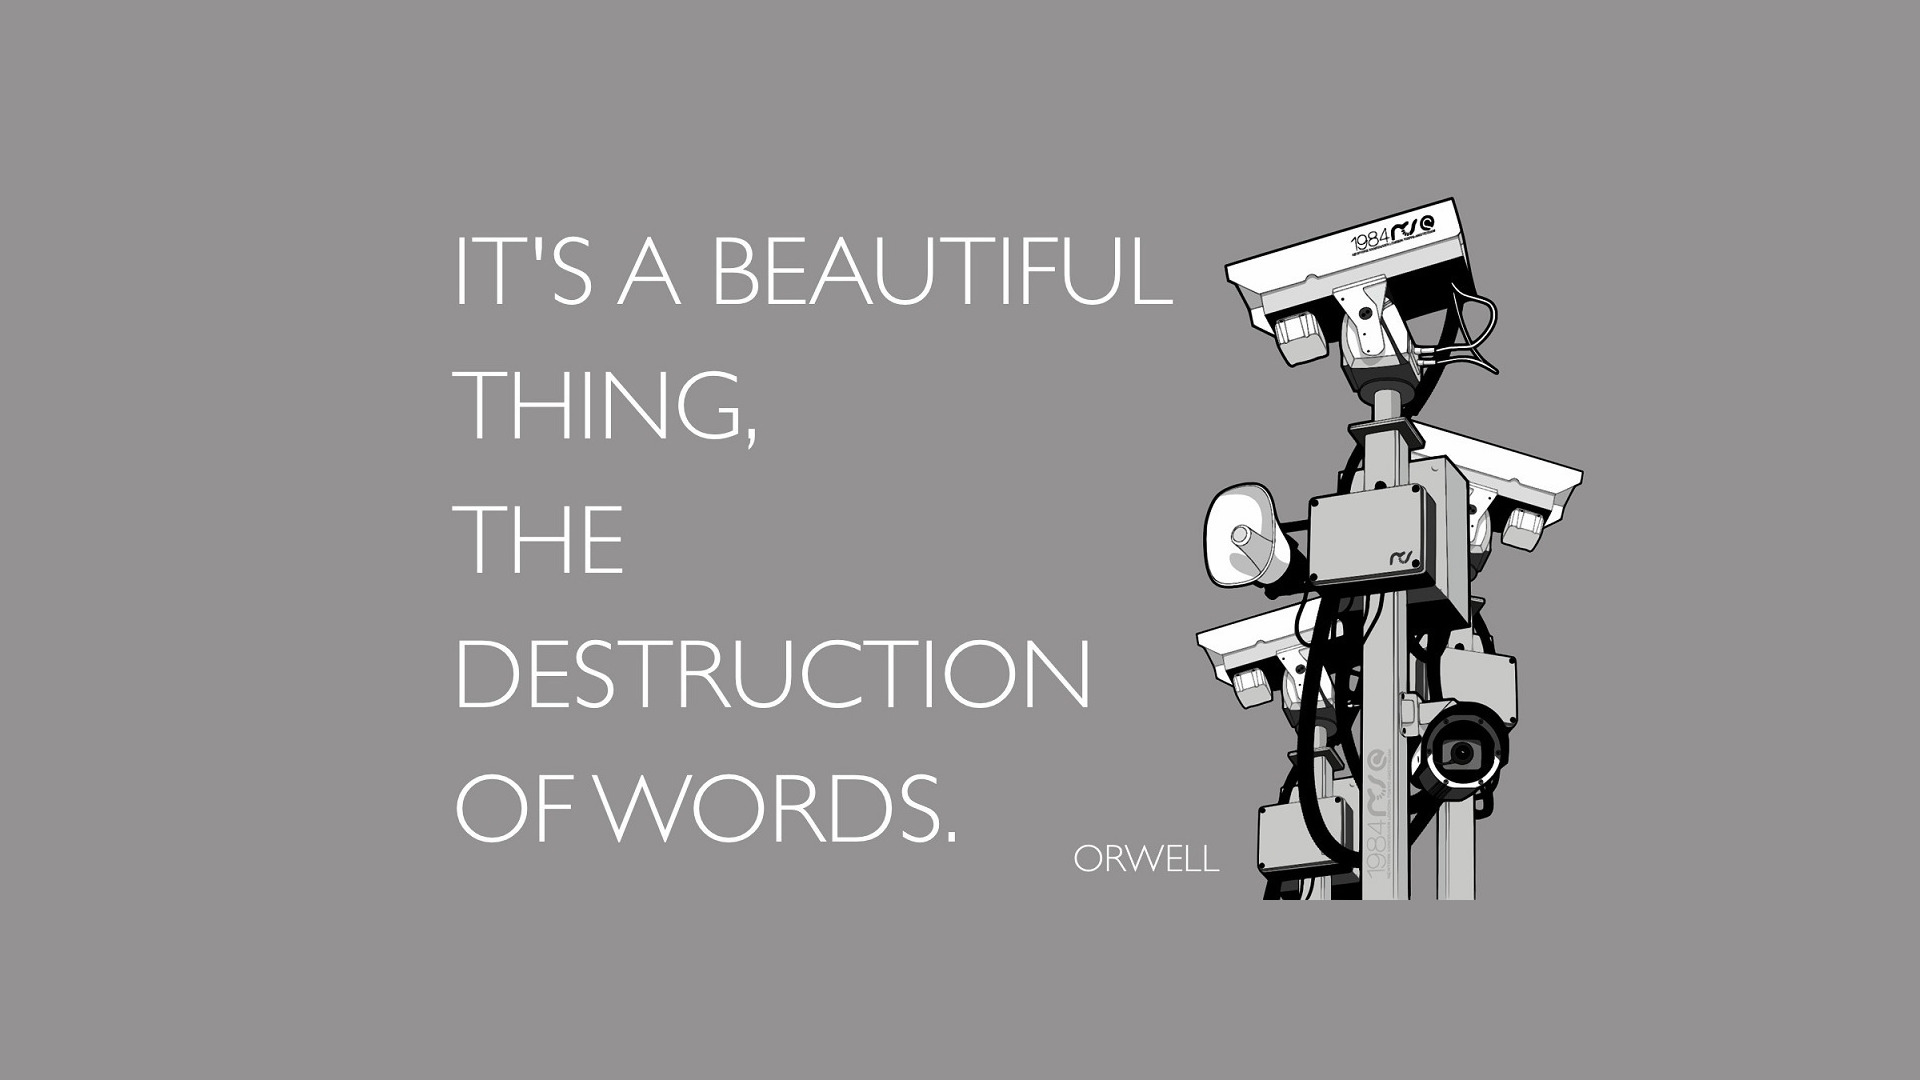 Cosmos Quotes Wallpaper Literature Quote George Orwell 1984 Wallpapers Hd